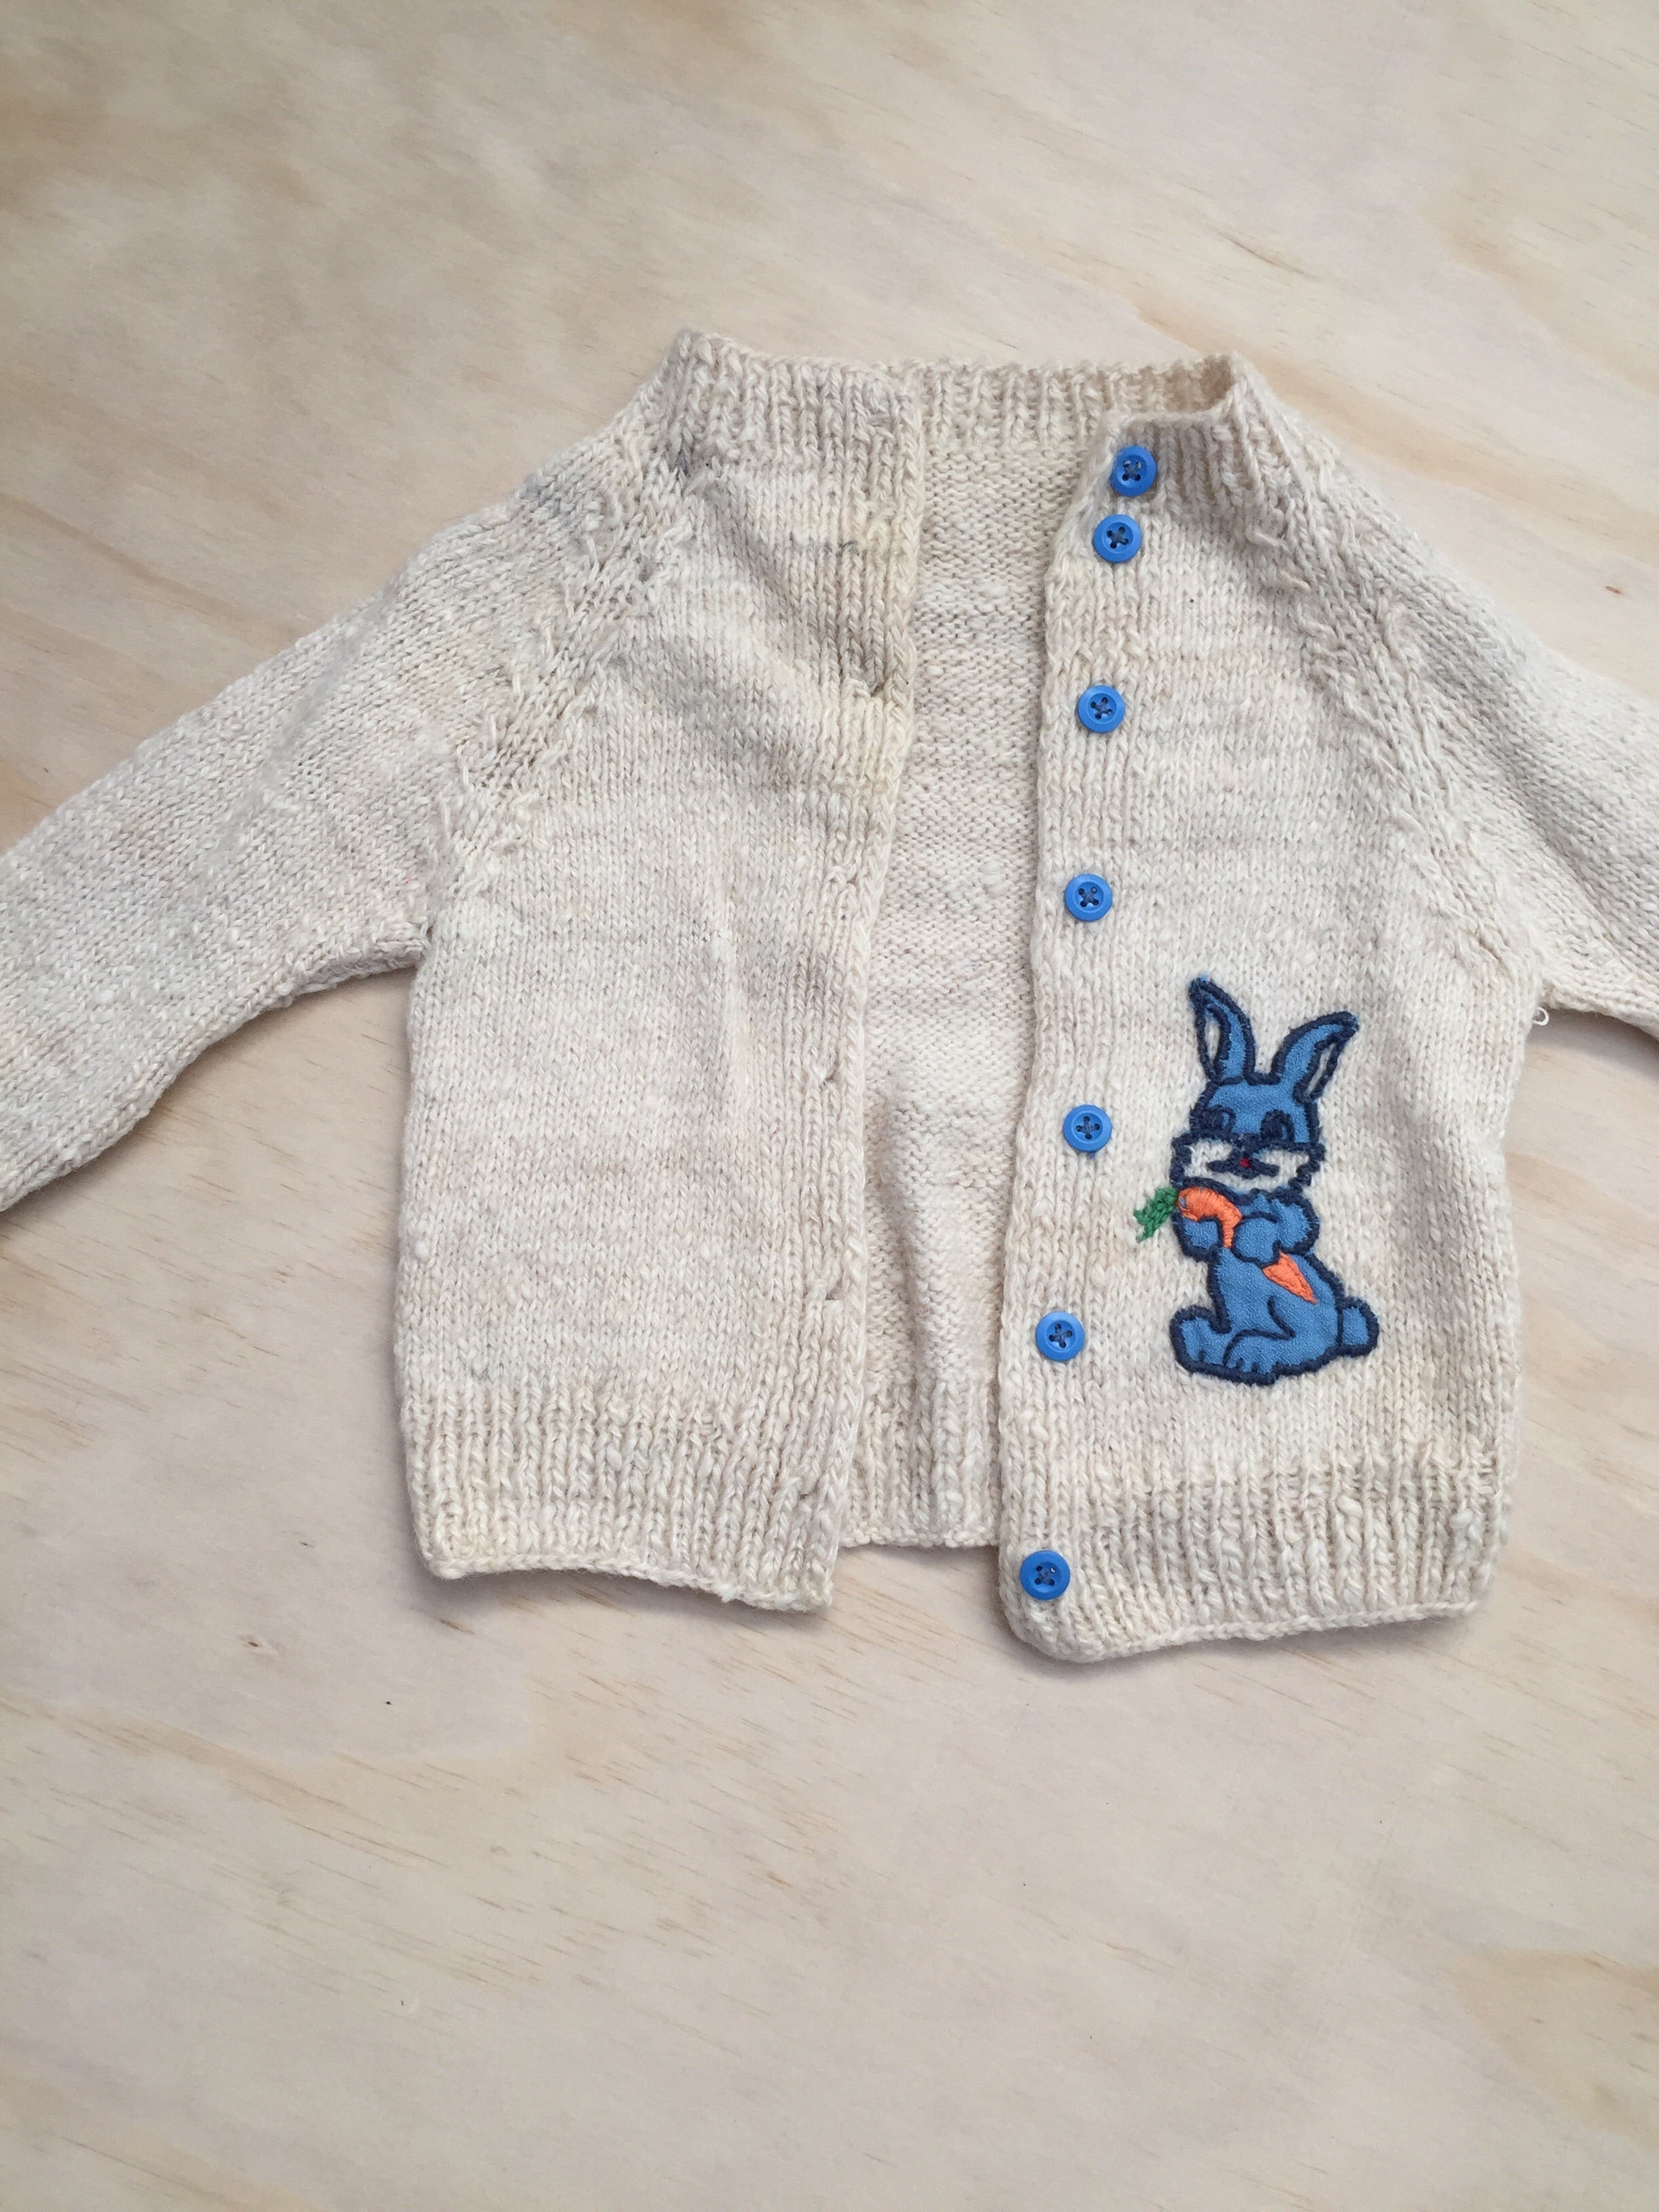 Handknitted Russian Rabbit cardigan — Size 2